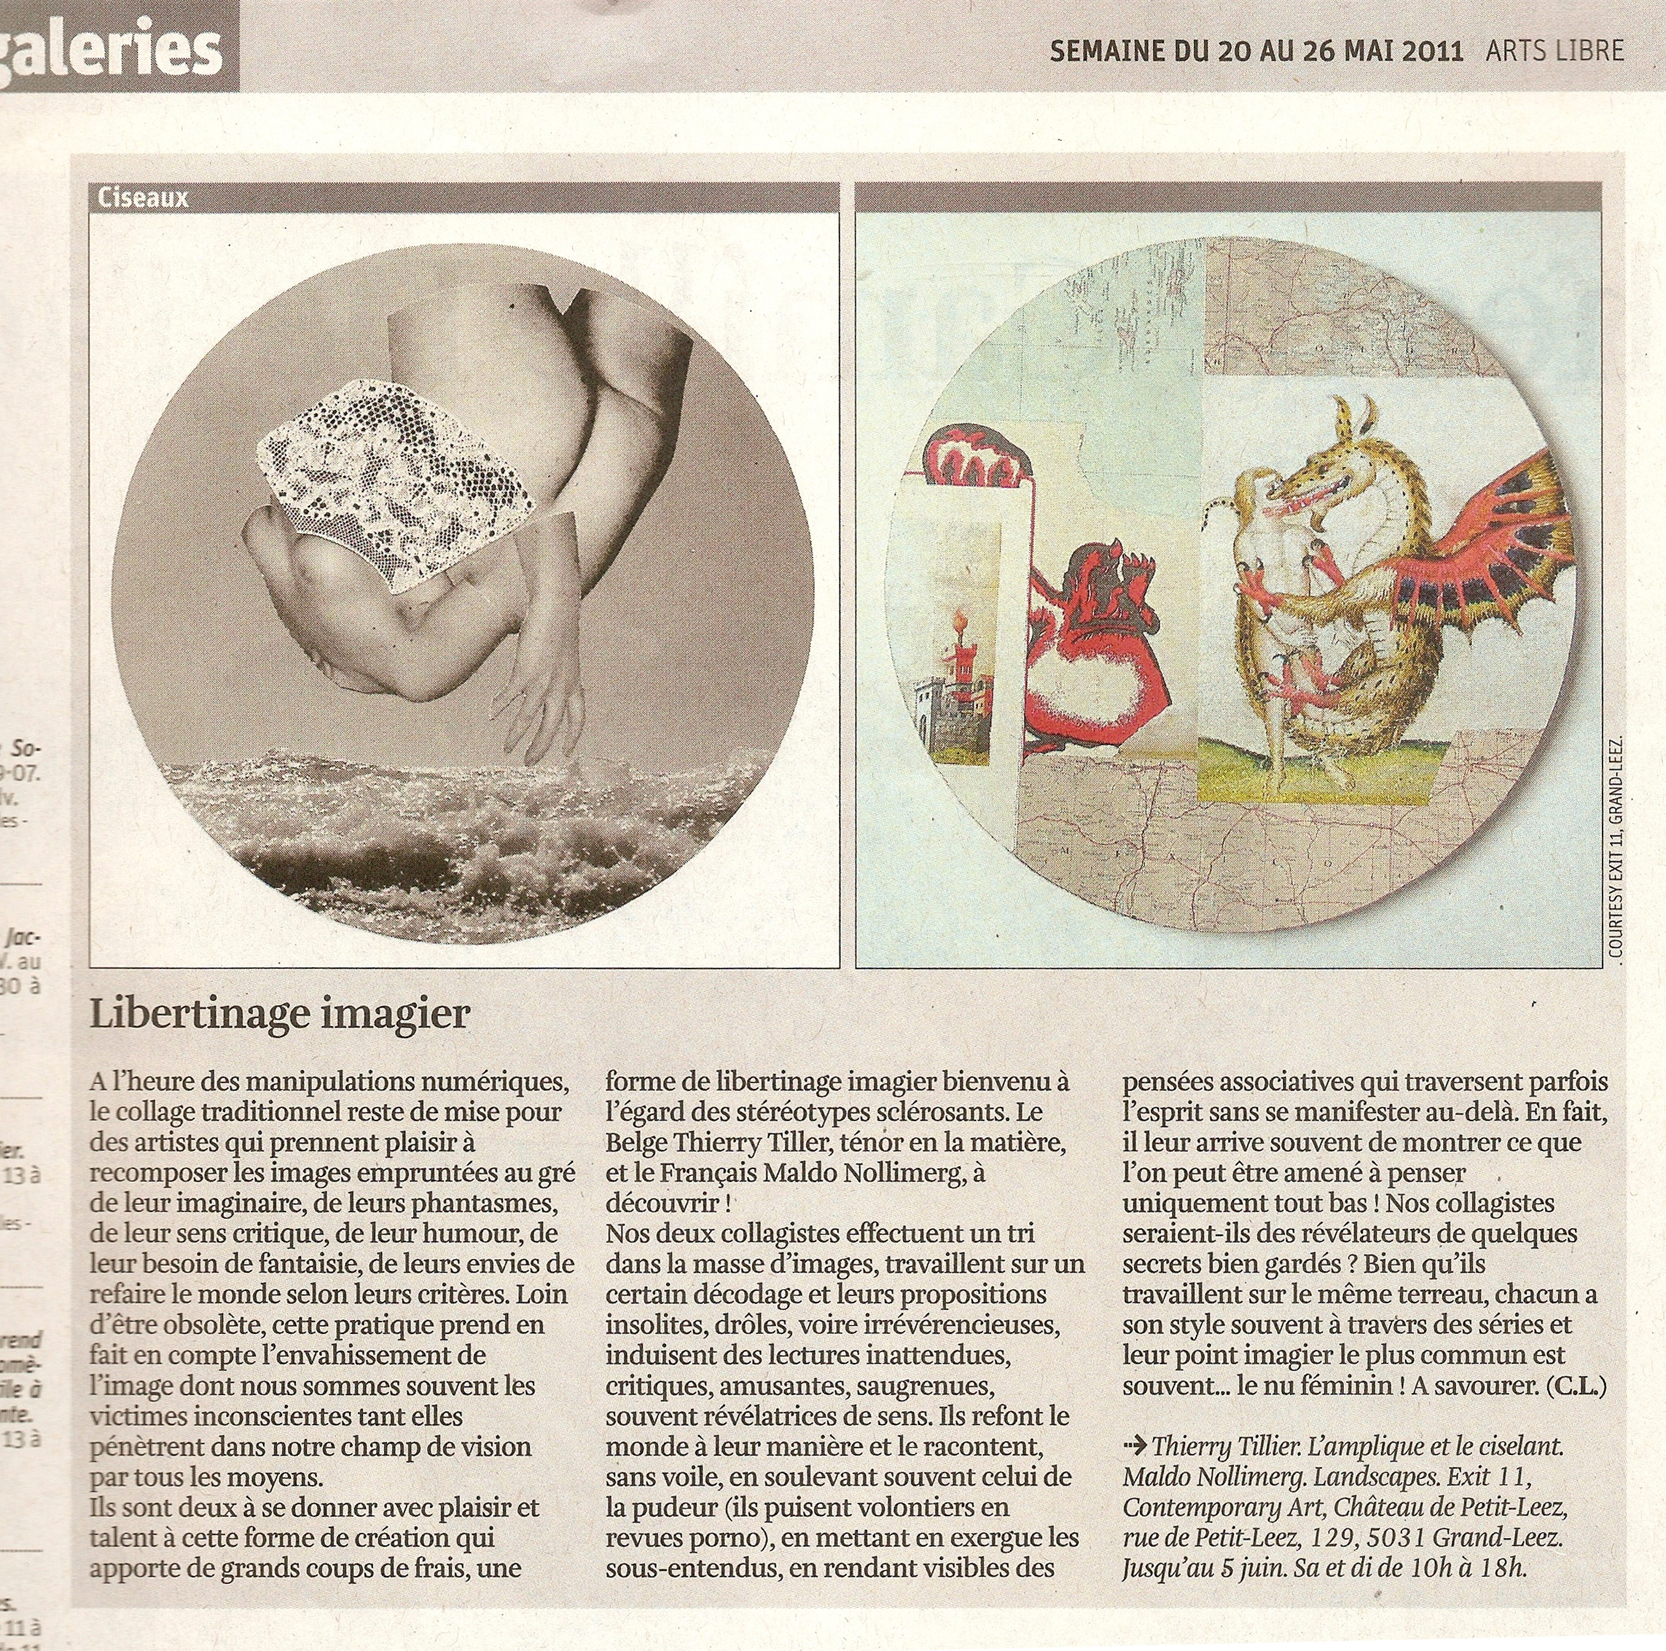 Thierry Tillier – Libertinage imagier – Claude Lorent, Arts Libre supplement to LA LIBRE BELGIQUE, Friday May 20, 2011